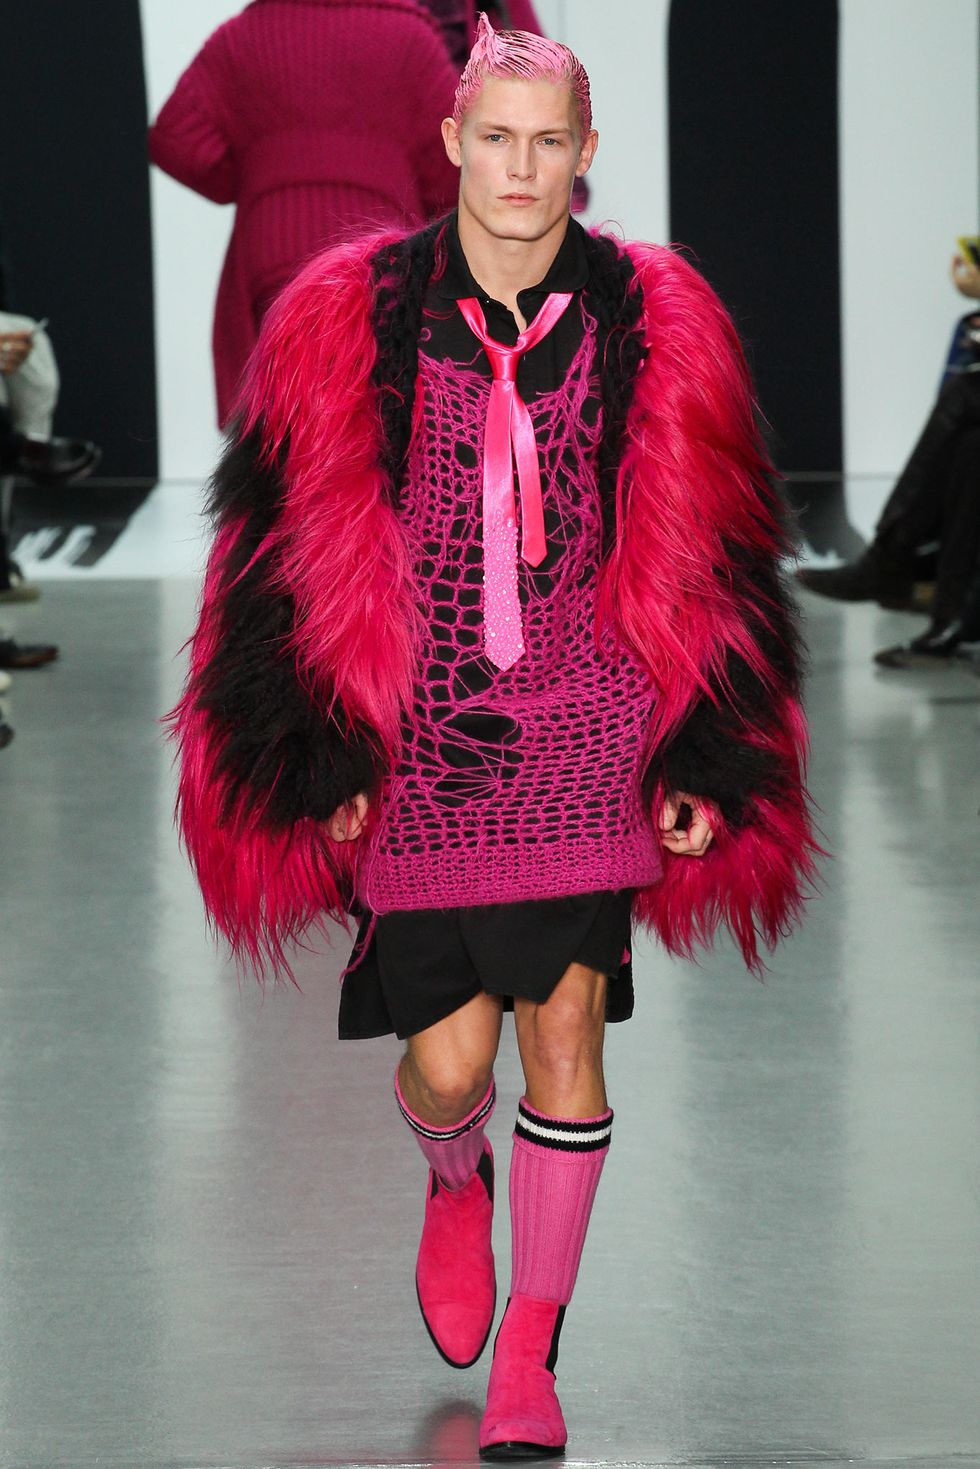 Our Top 5 Favorite Collections At London Men's Fashion Week